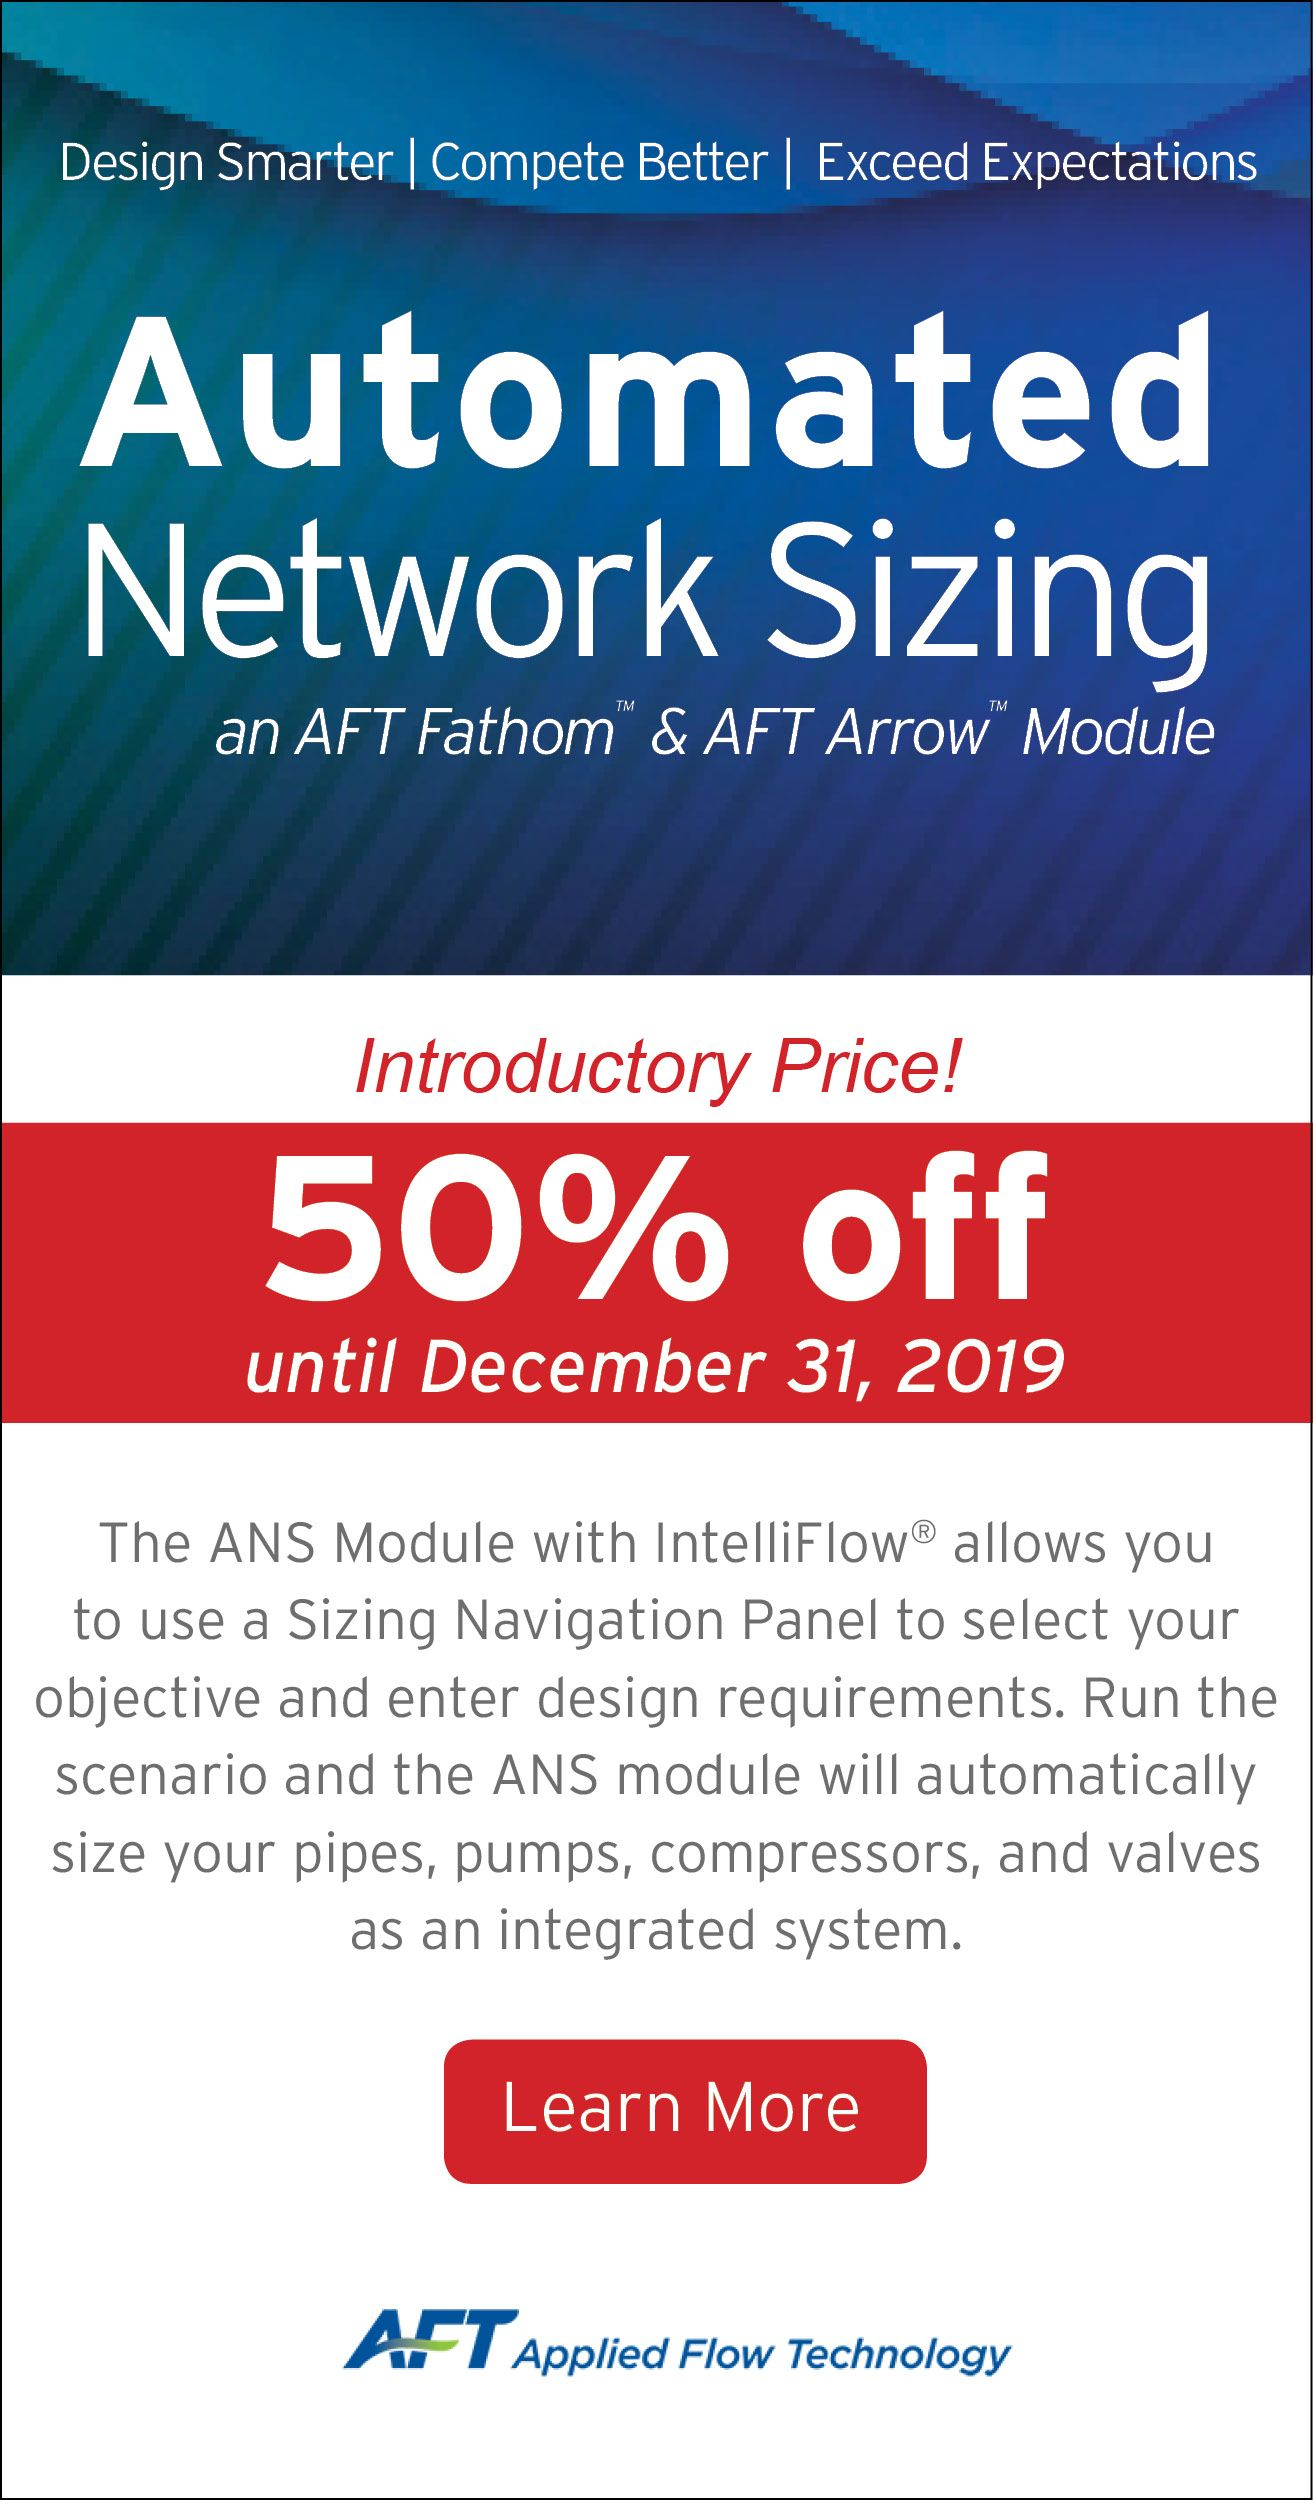 Automated Network Sizing Coupon